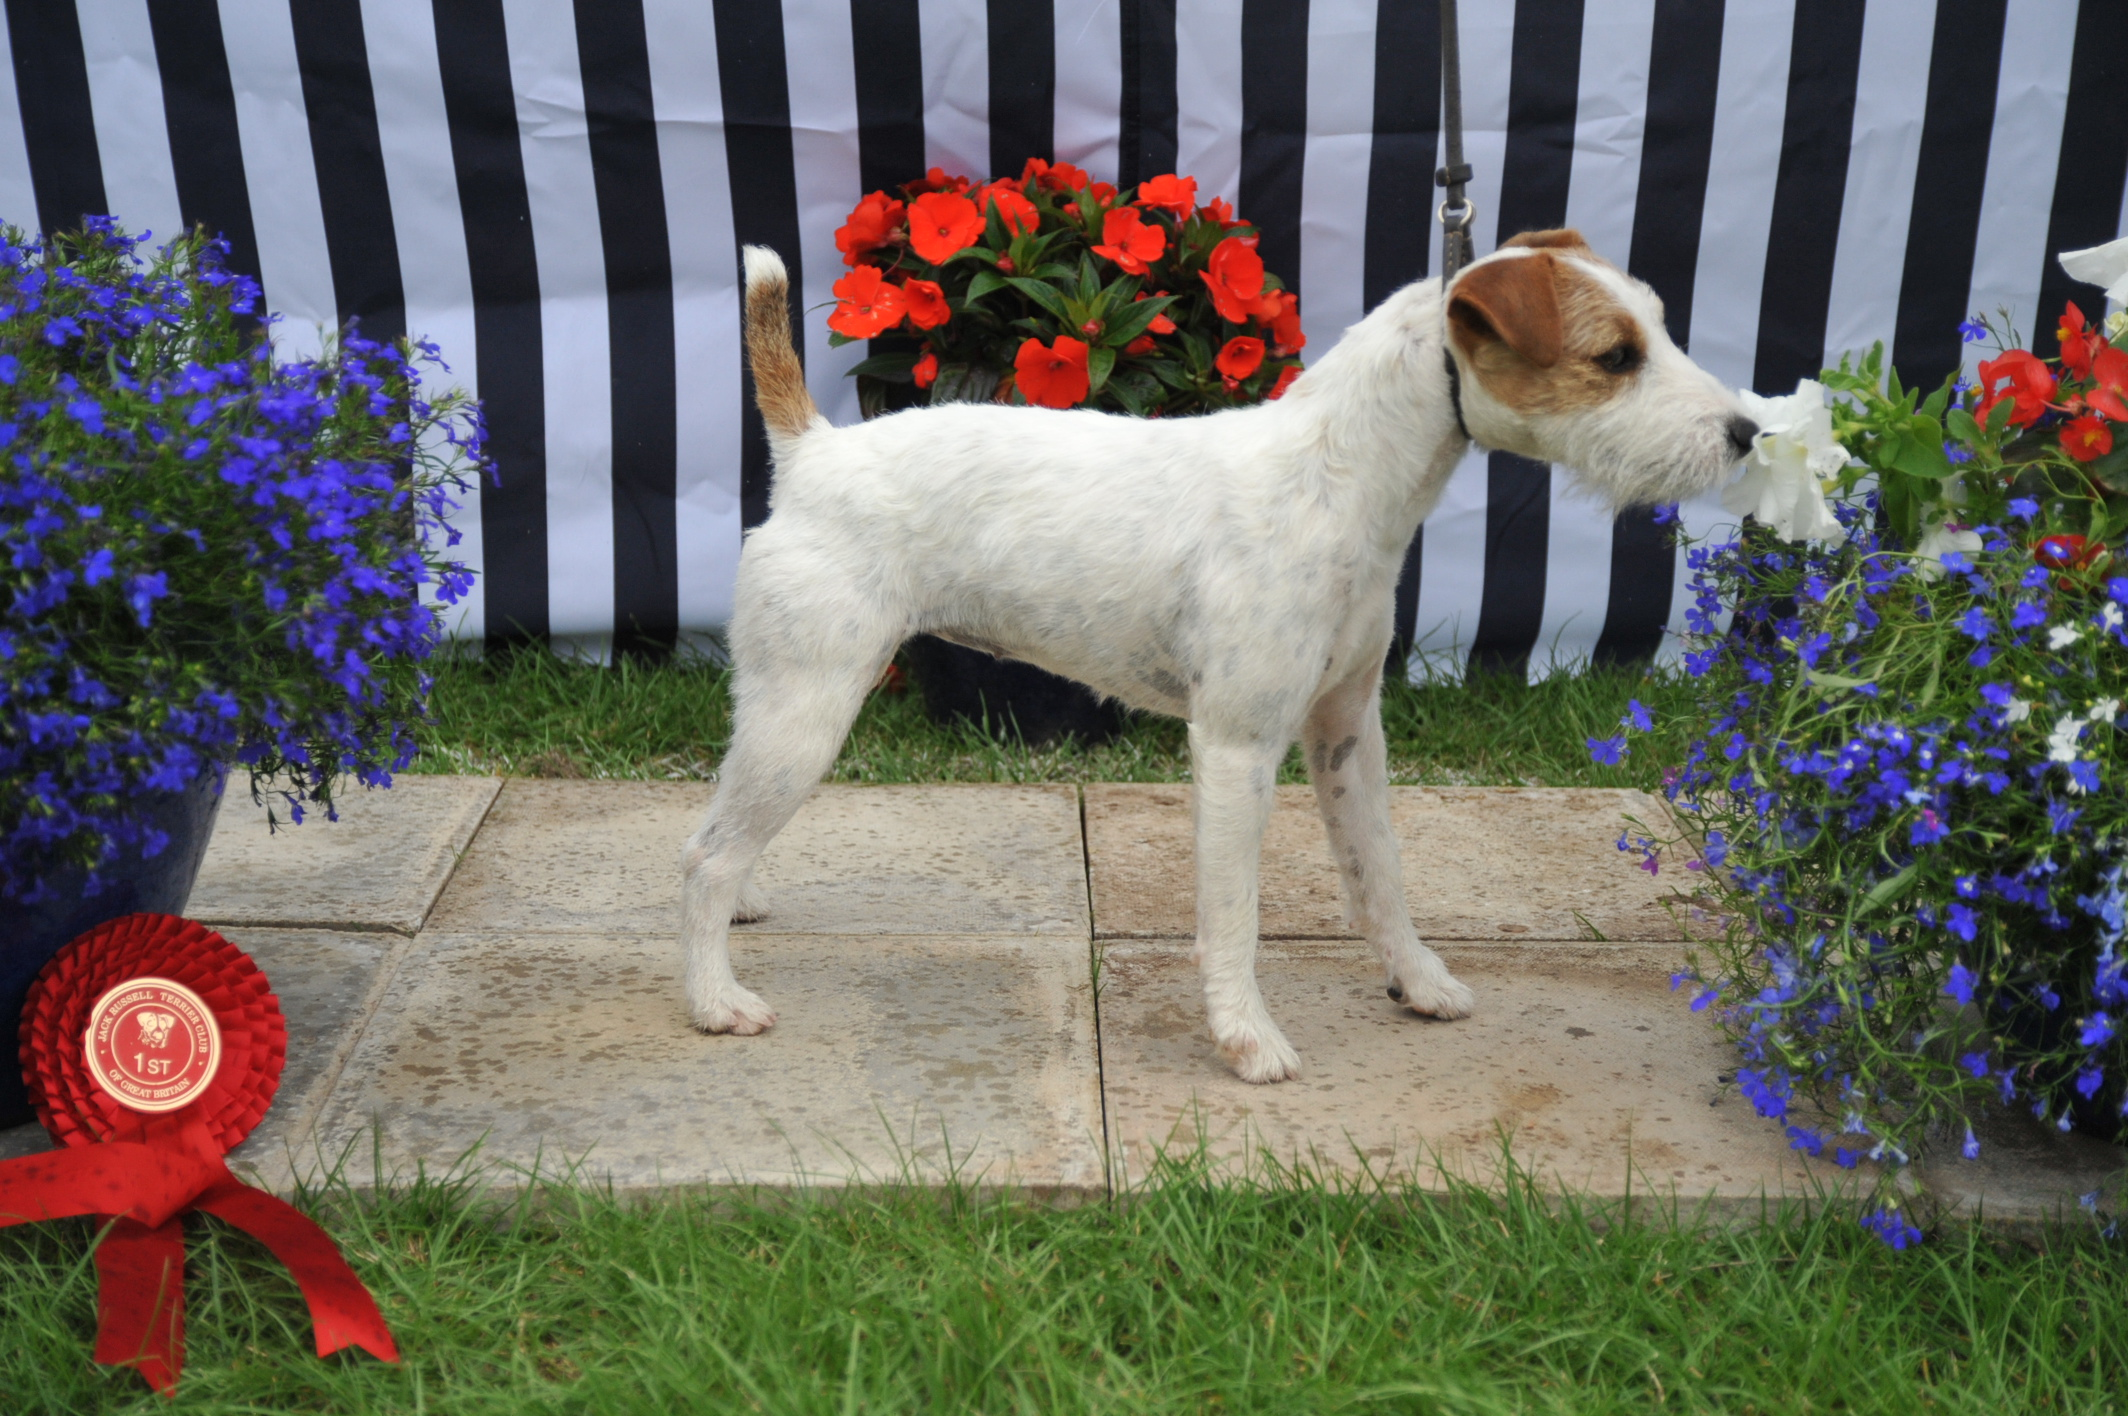 "Class 9 10""-12 1/2"" smooth/rough/broken coated bitch pup (6-9 months) 